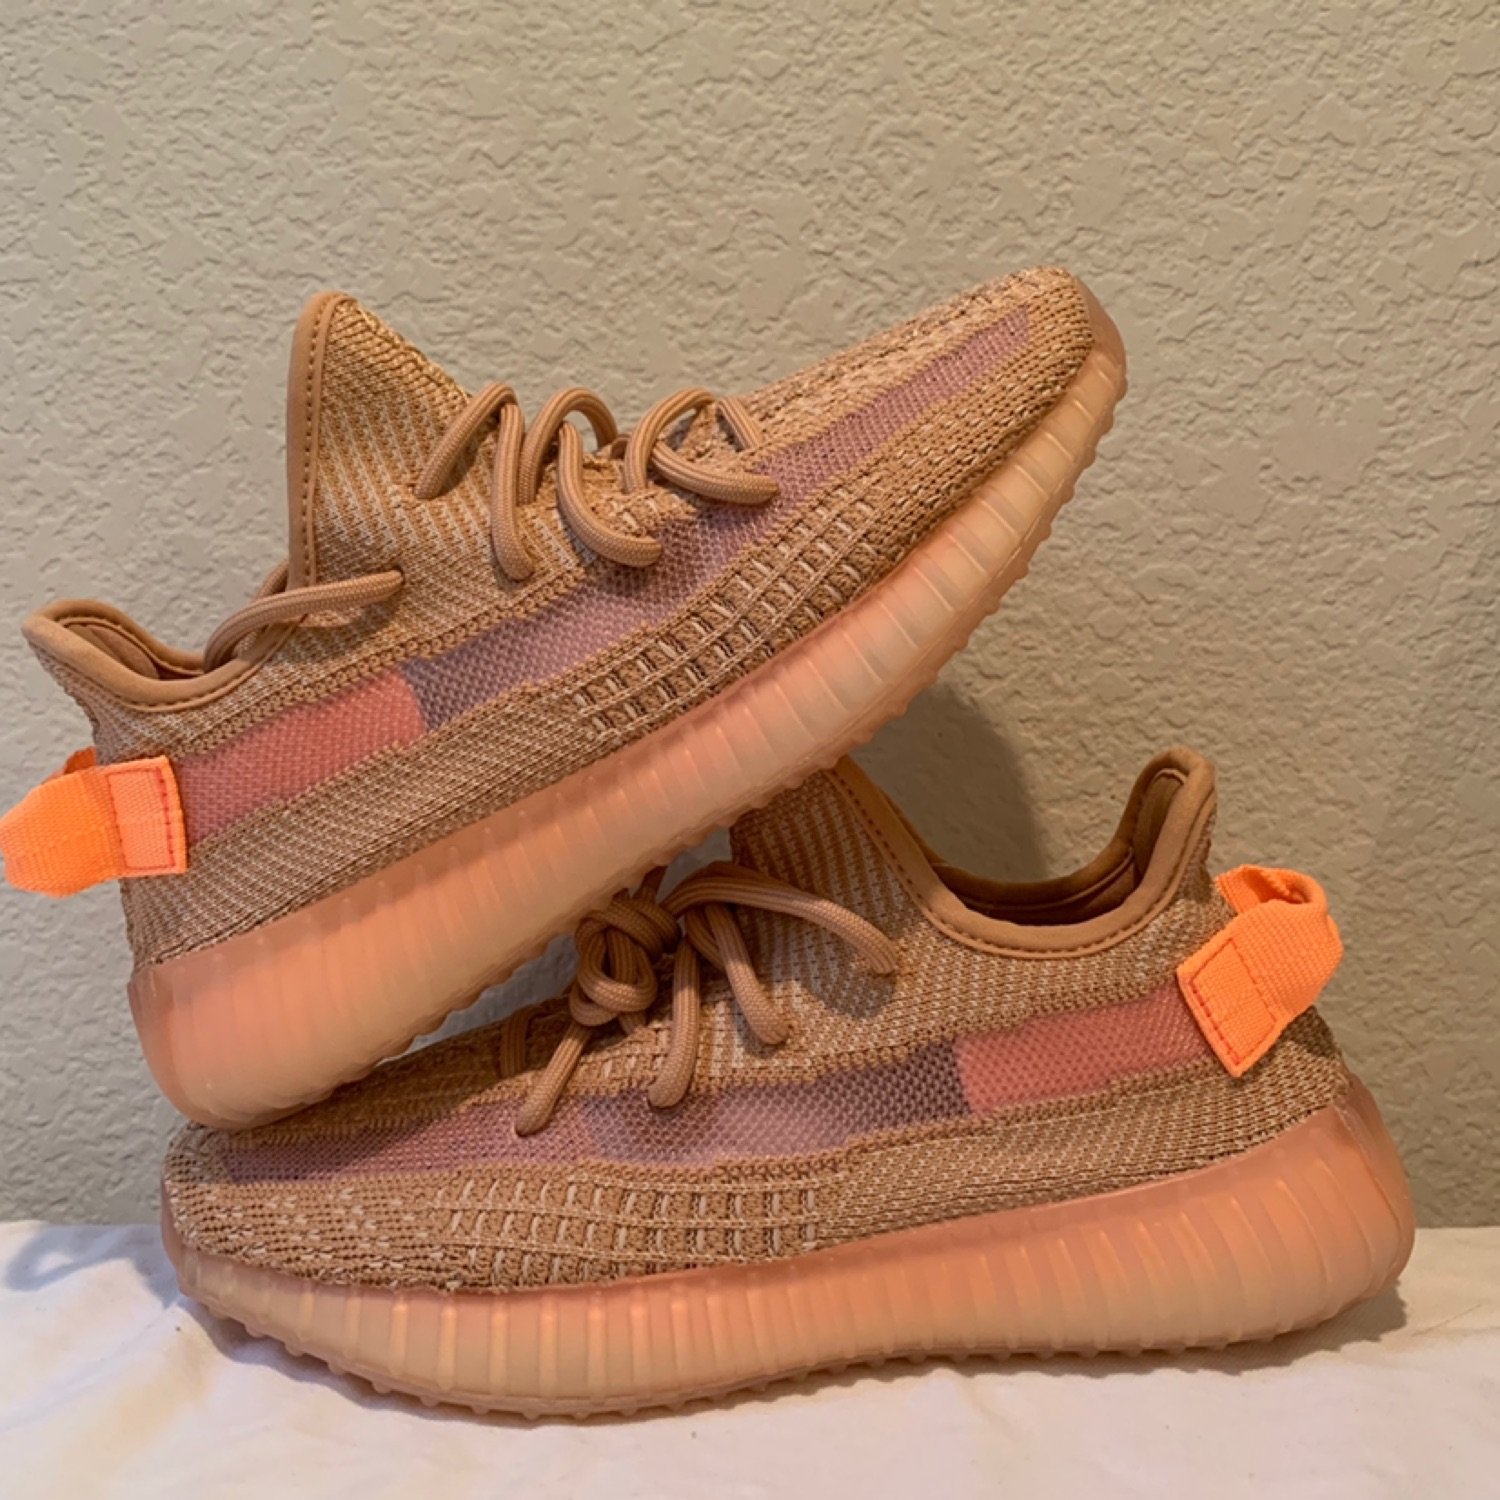 Adidas Yeezy Boost 350 V2 Clay | Footwear Other | SidelineSwap